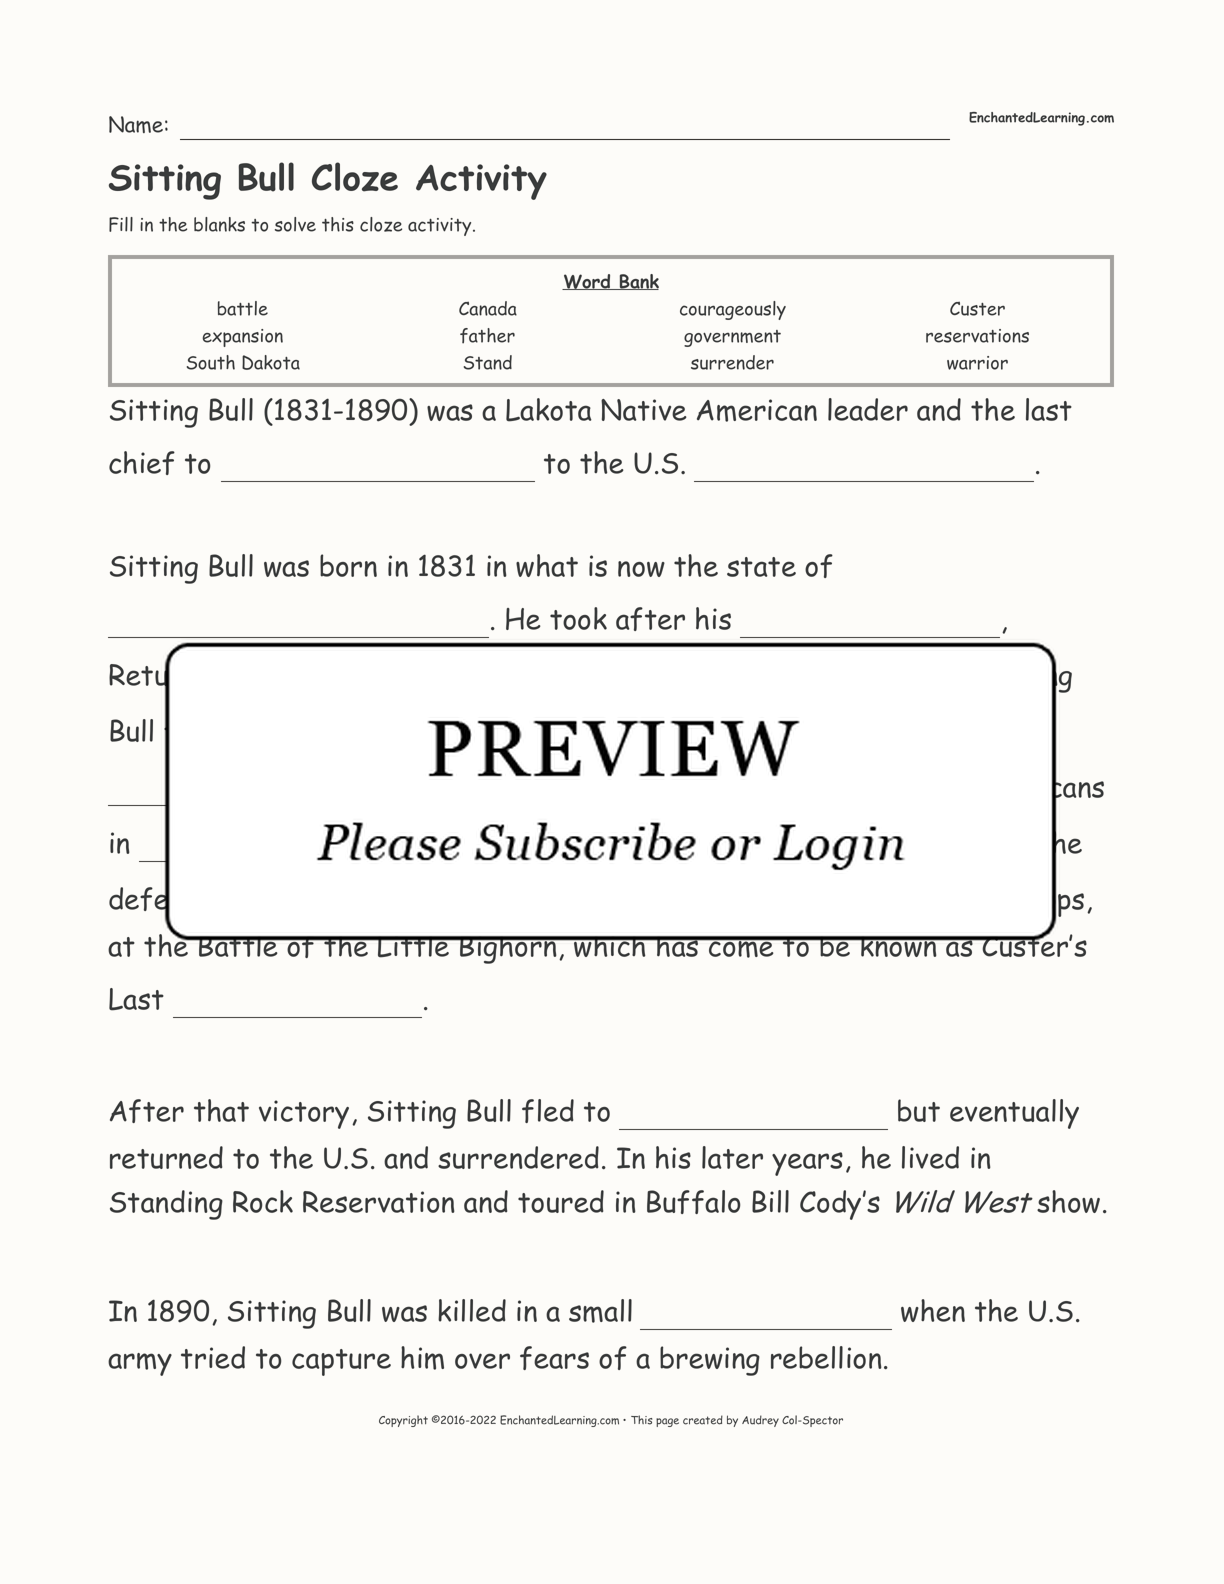 Sitting Bull Cloze Activity interactive worksheet page 1